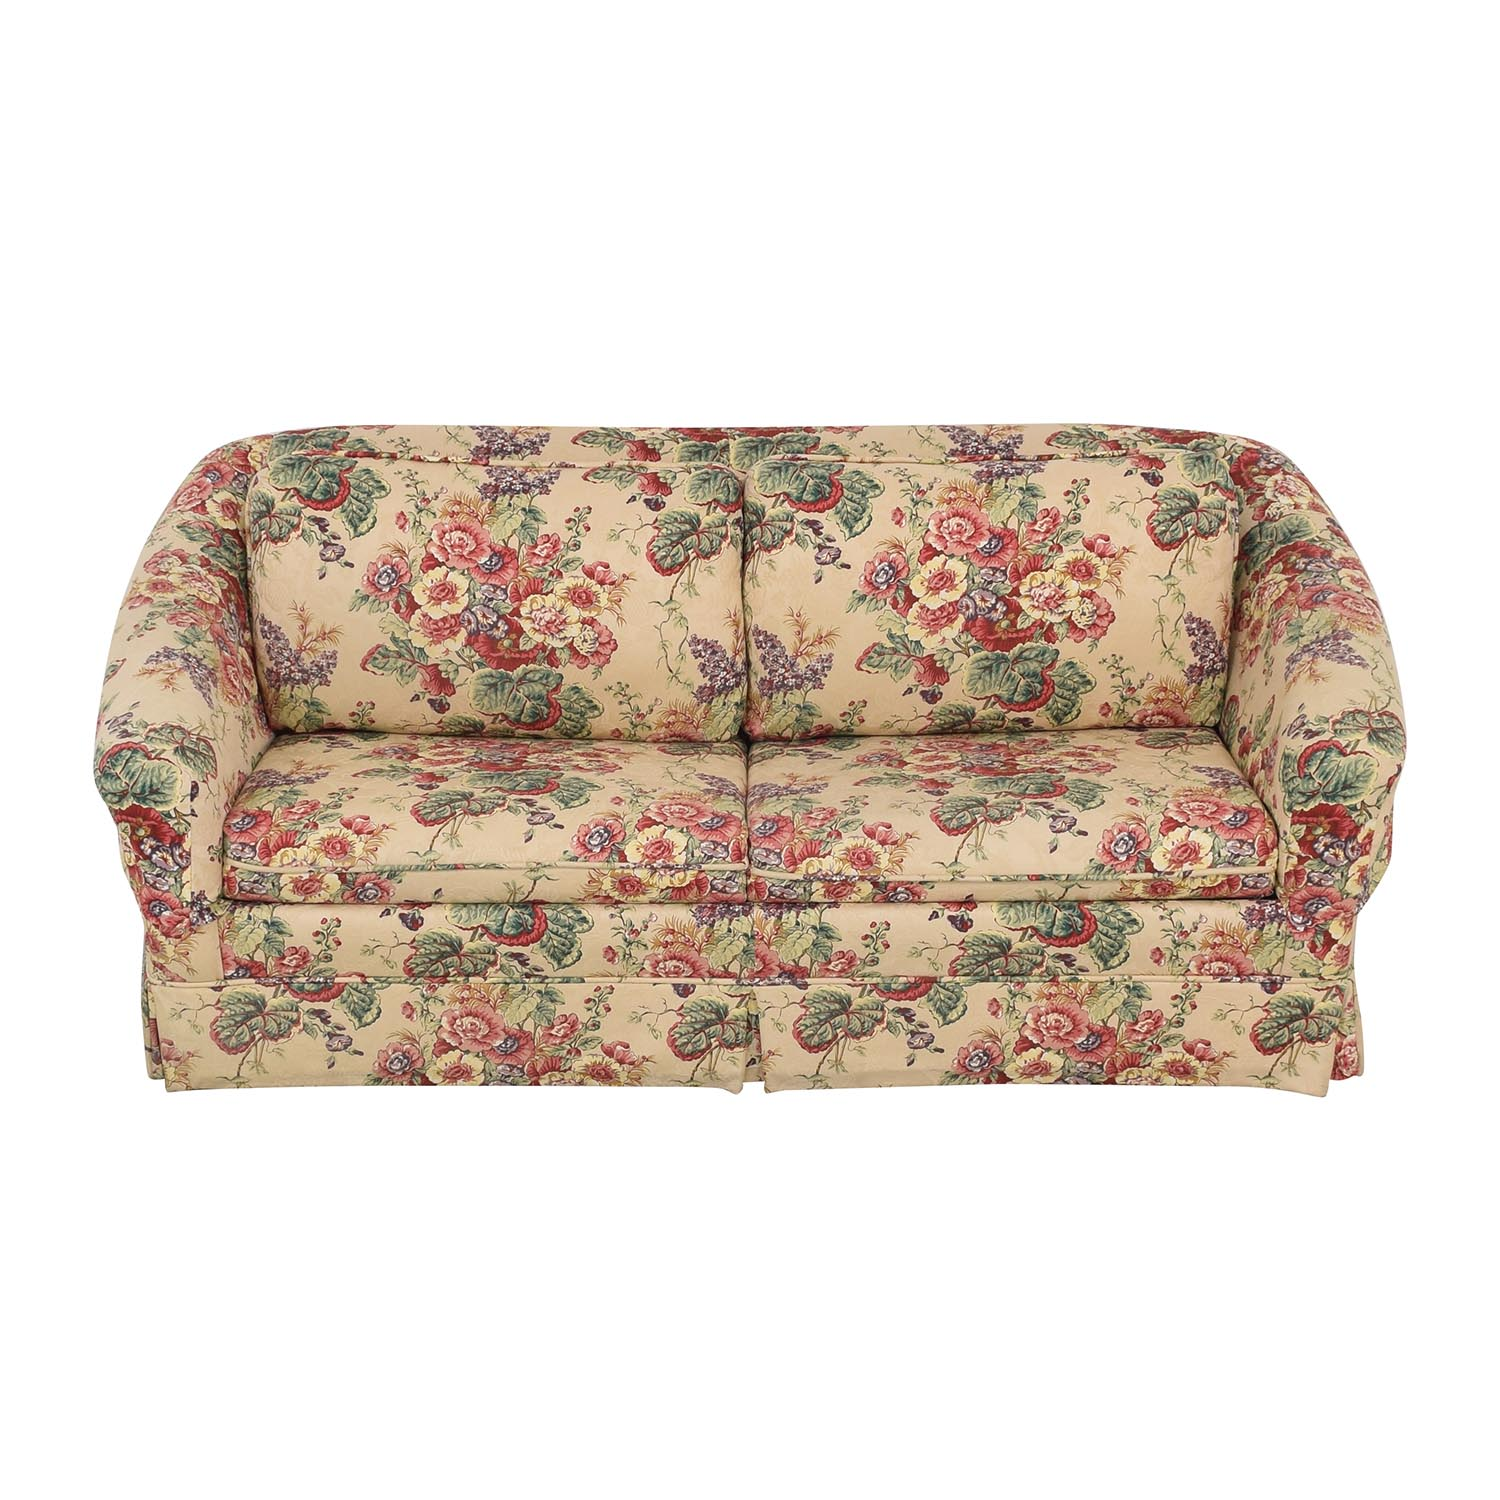 buy Castro Convertibles Full Floral Sofa Bed Castro Convertibles Sofa Beds